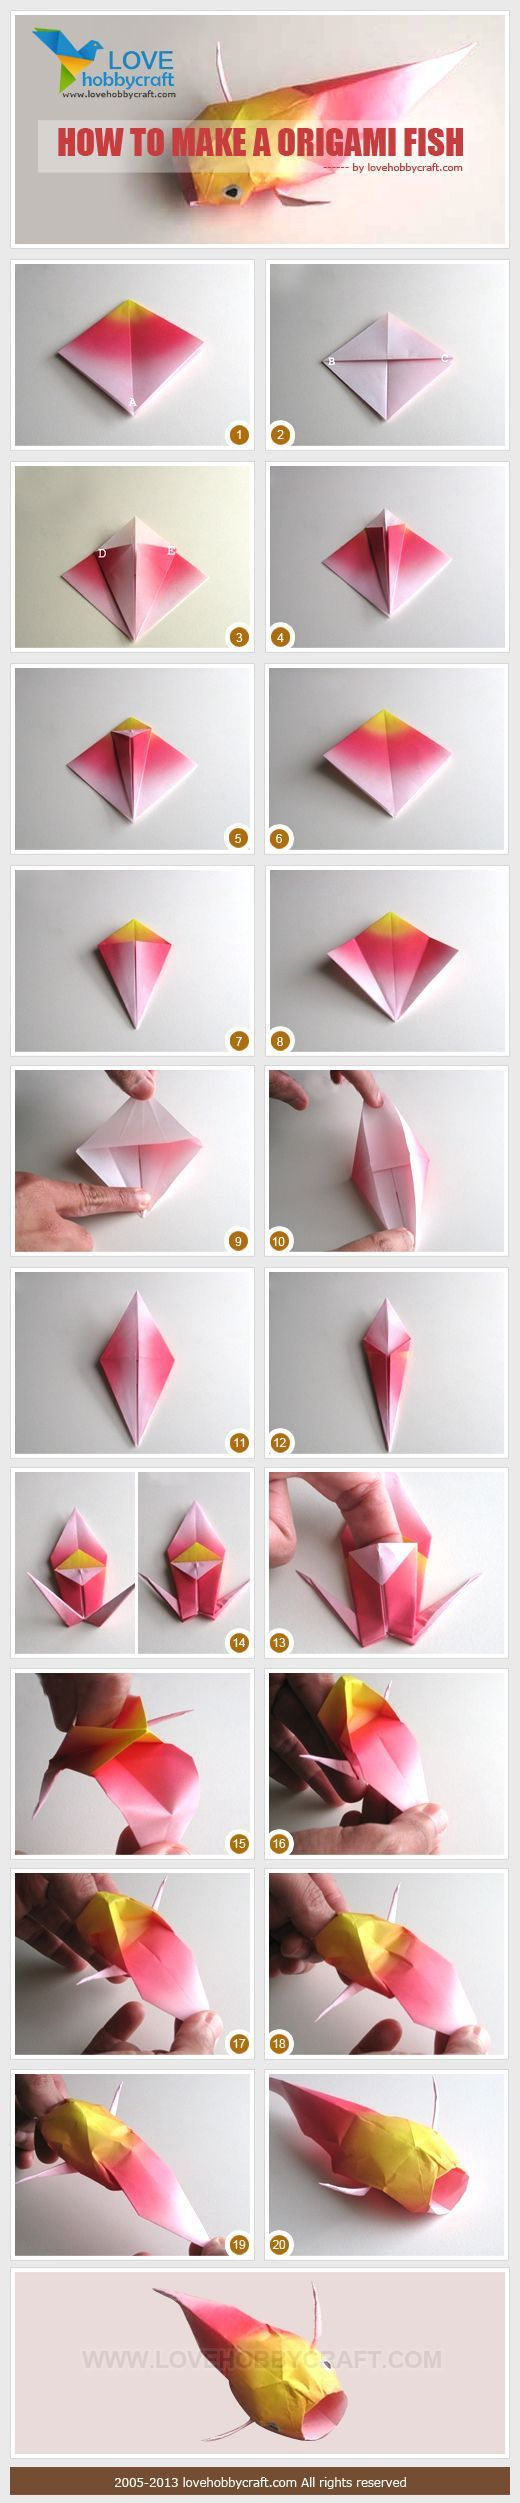 Best 25 origami fish ideas on pinterest koi origami for Origami koi fish